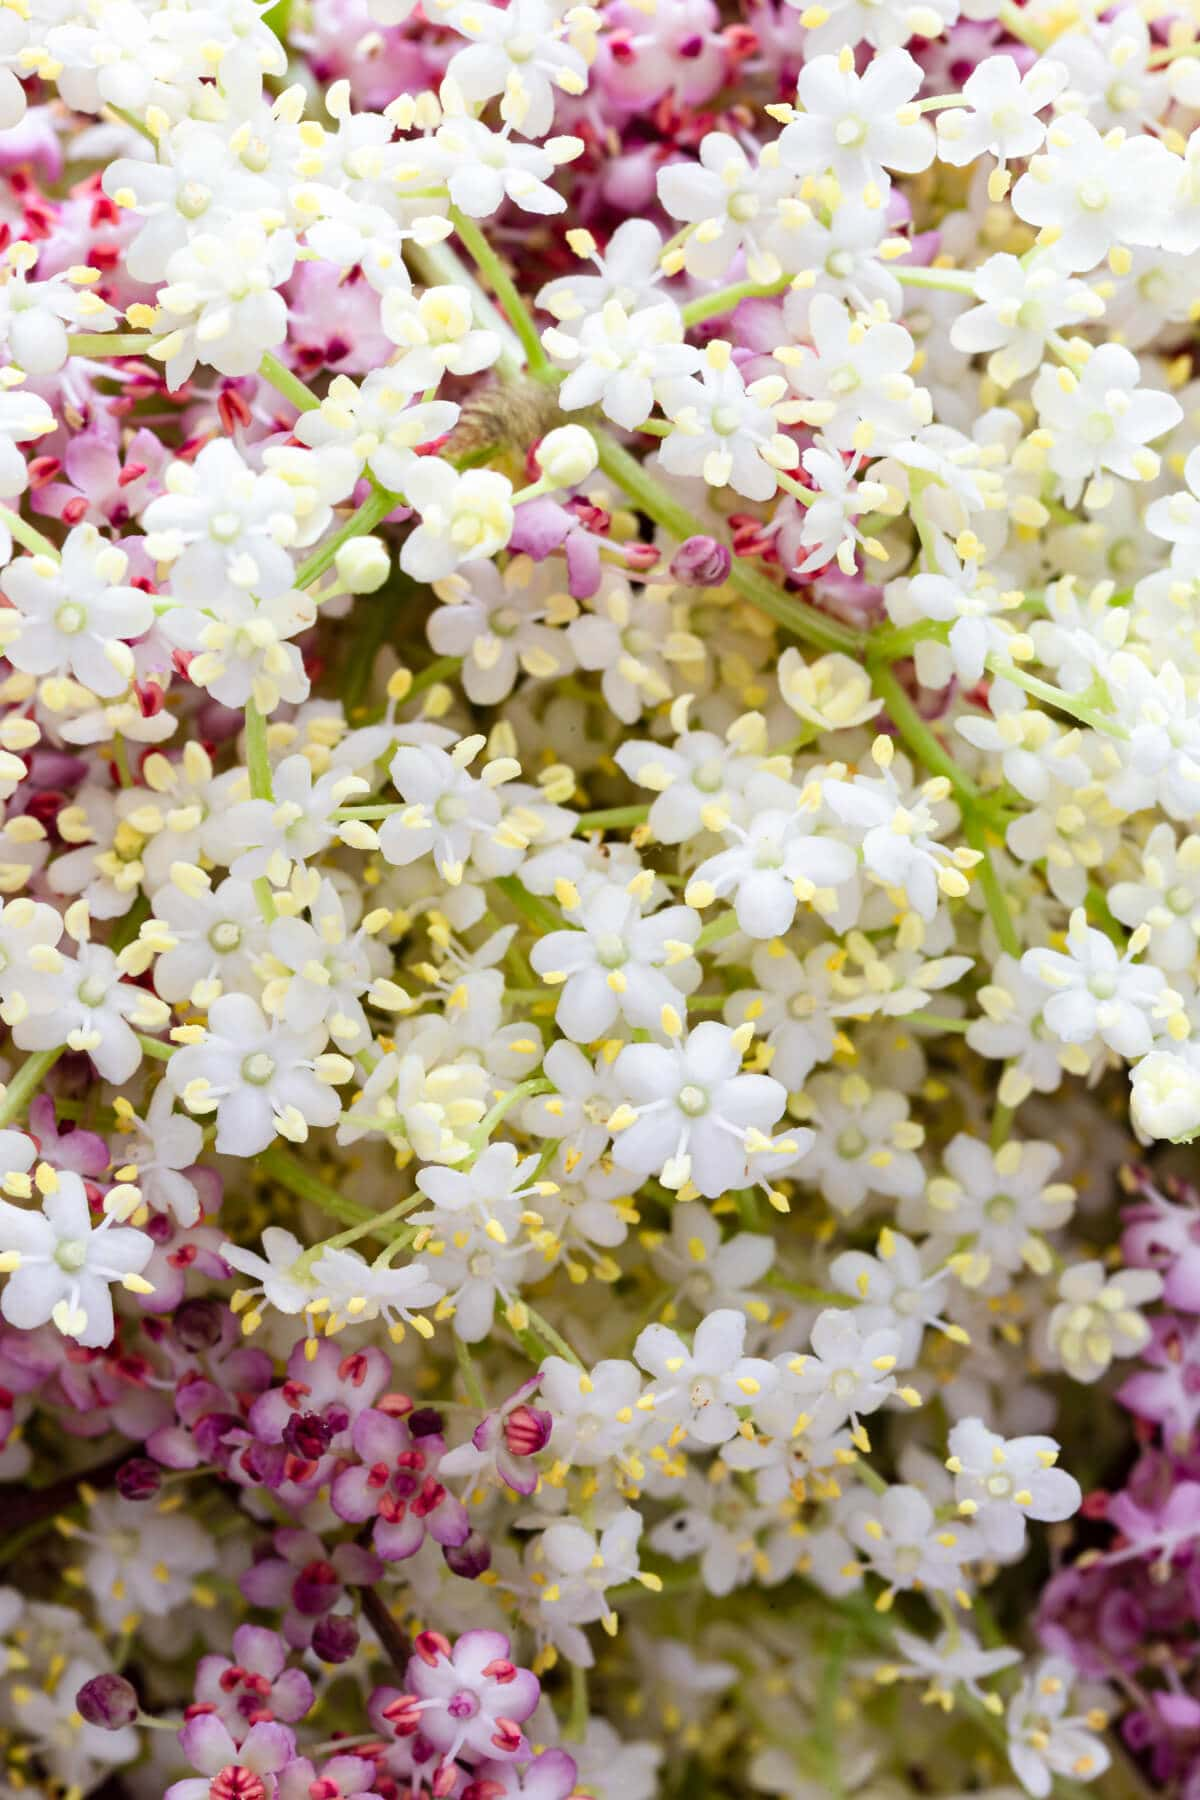 super close up at white and pink elderflowers